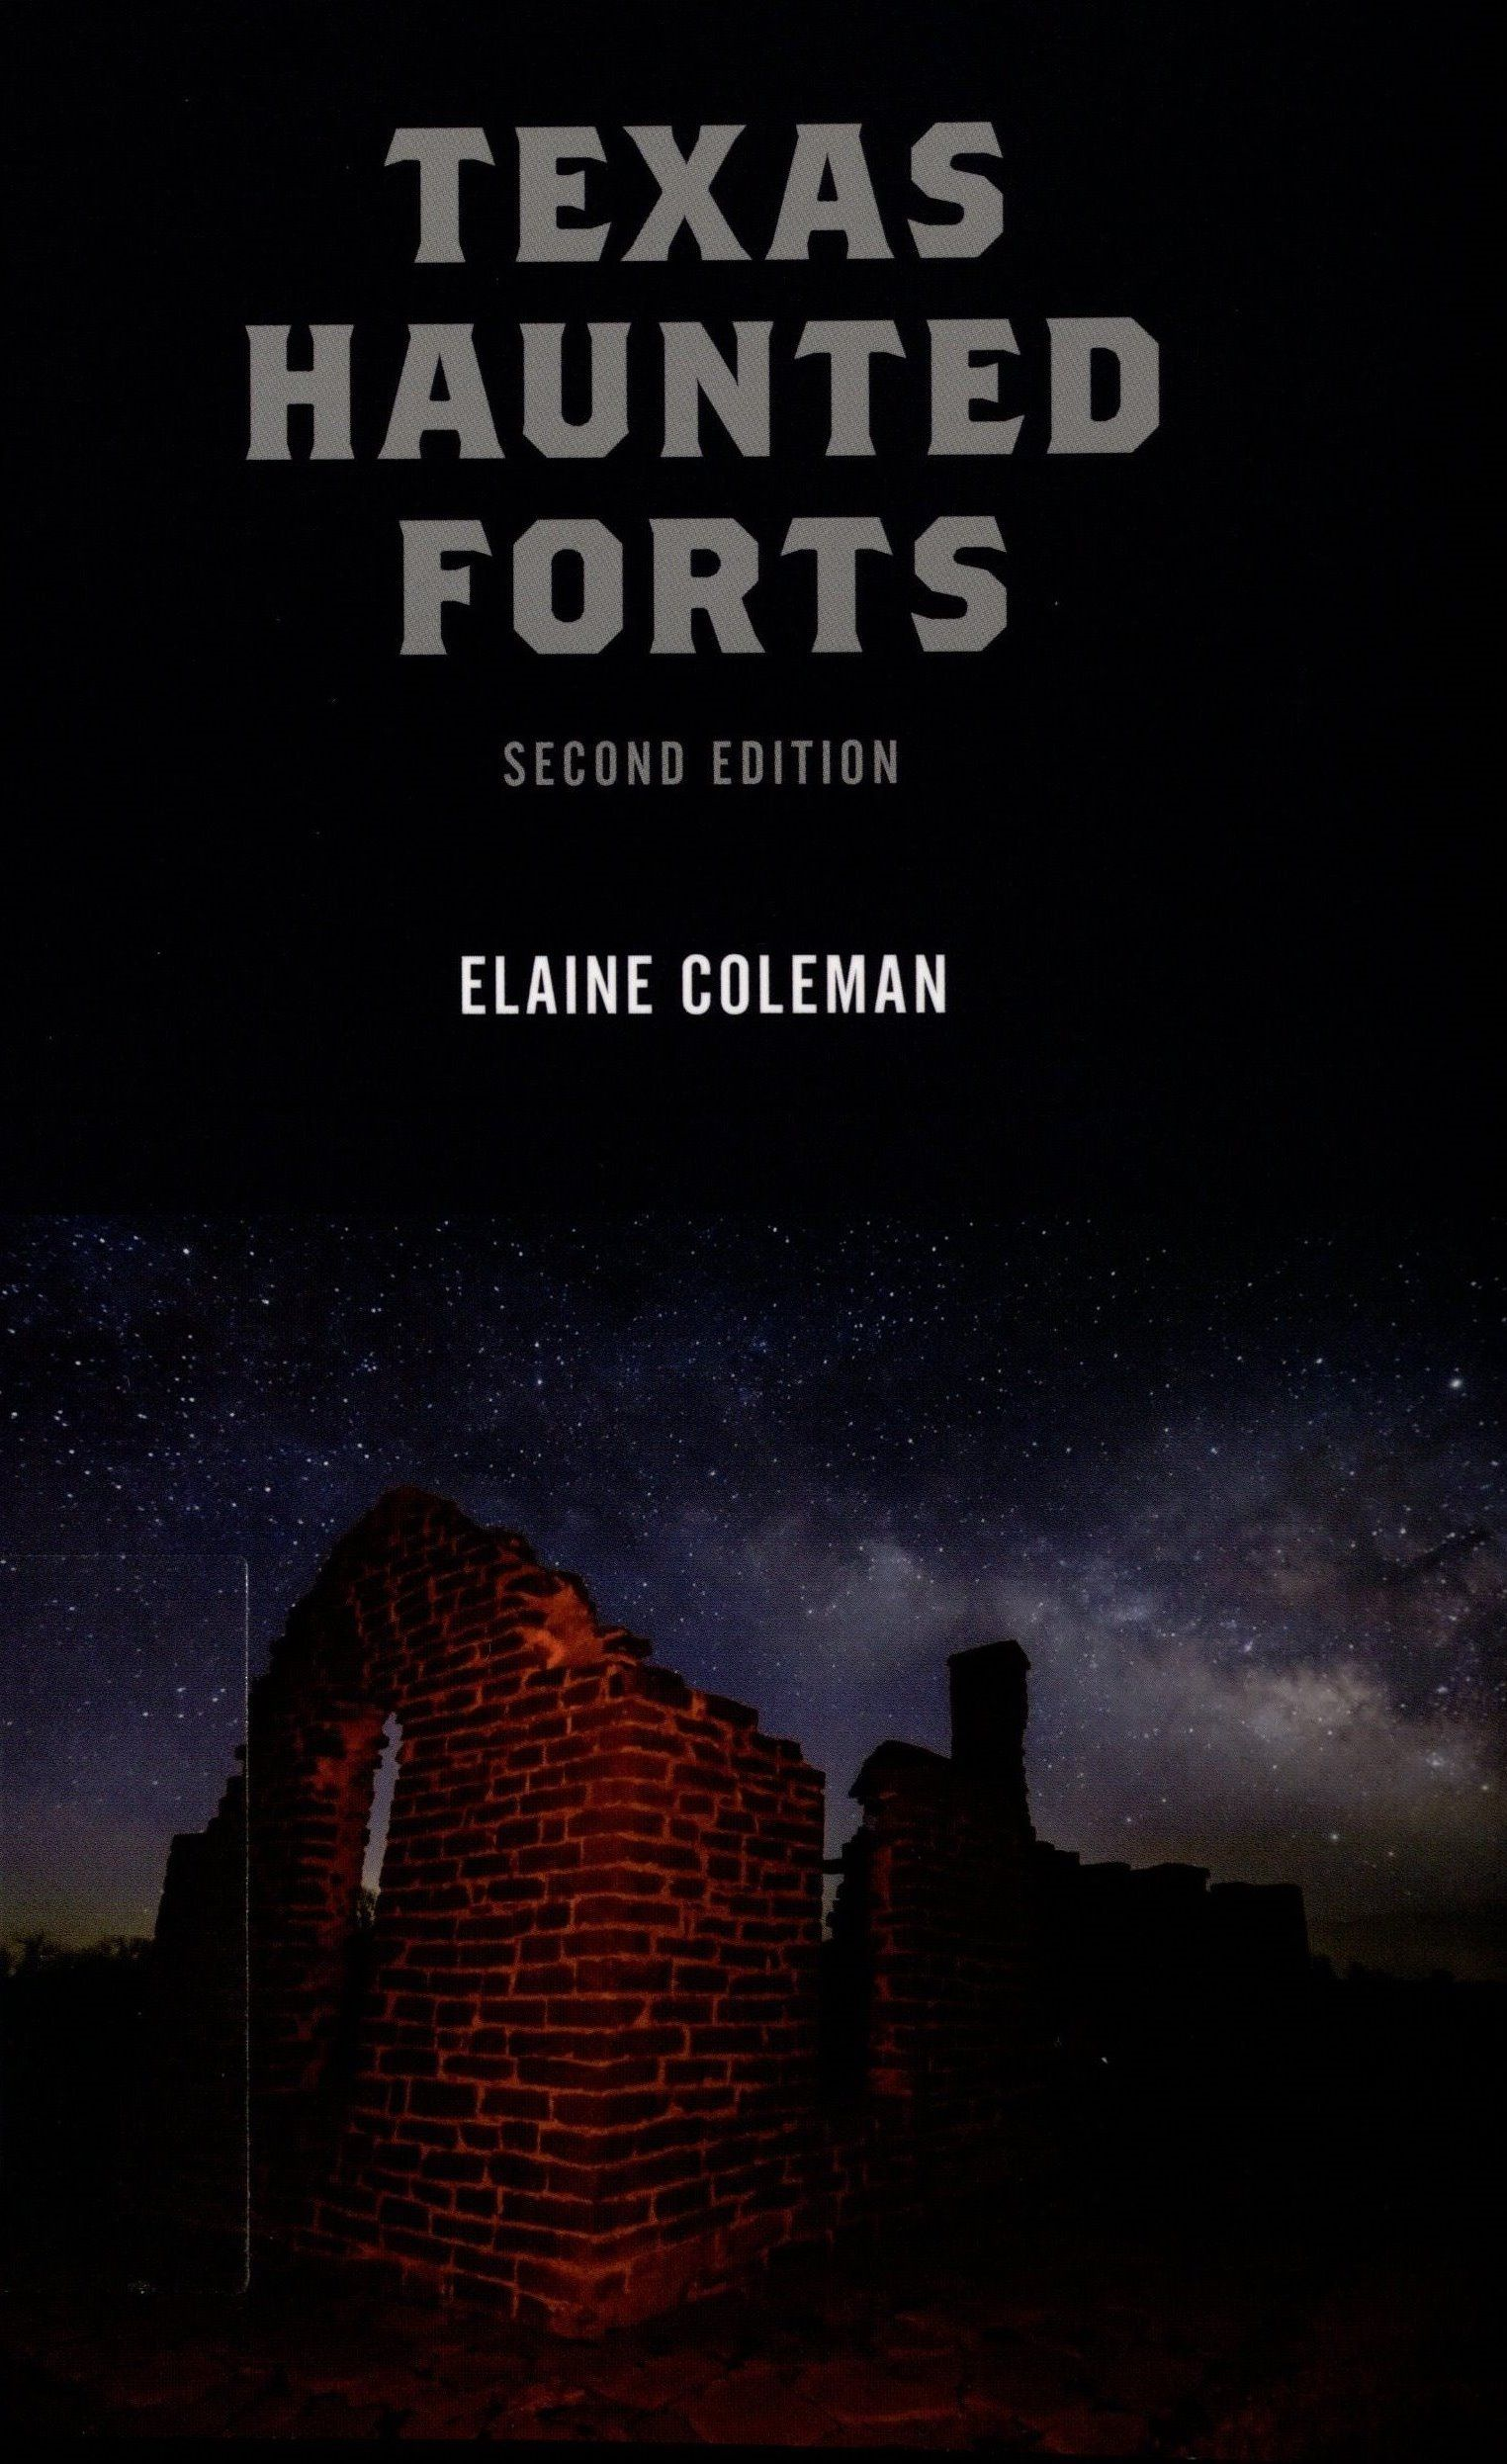 Coleman, Elaine. Texas Haunted Forts. Guilford, CT: Globe Pequot, 2018. Print.